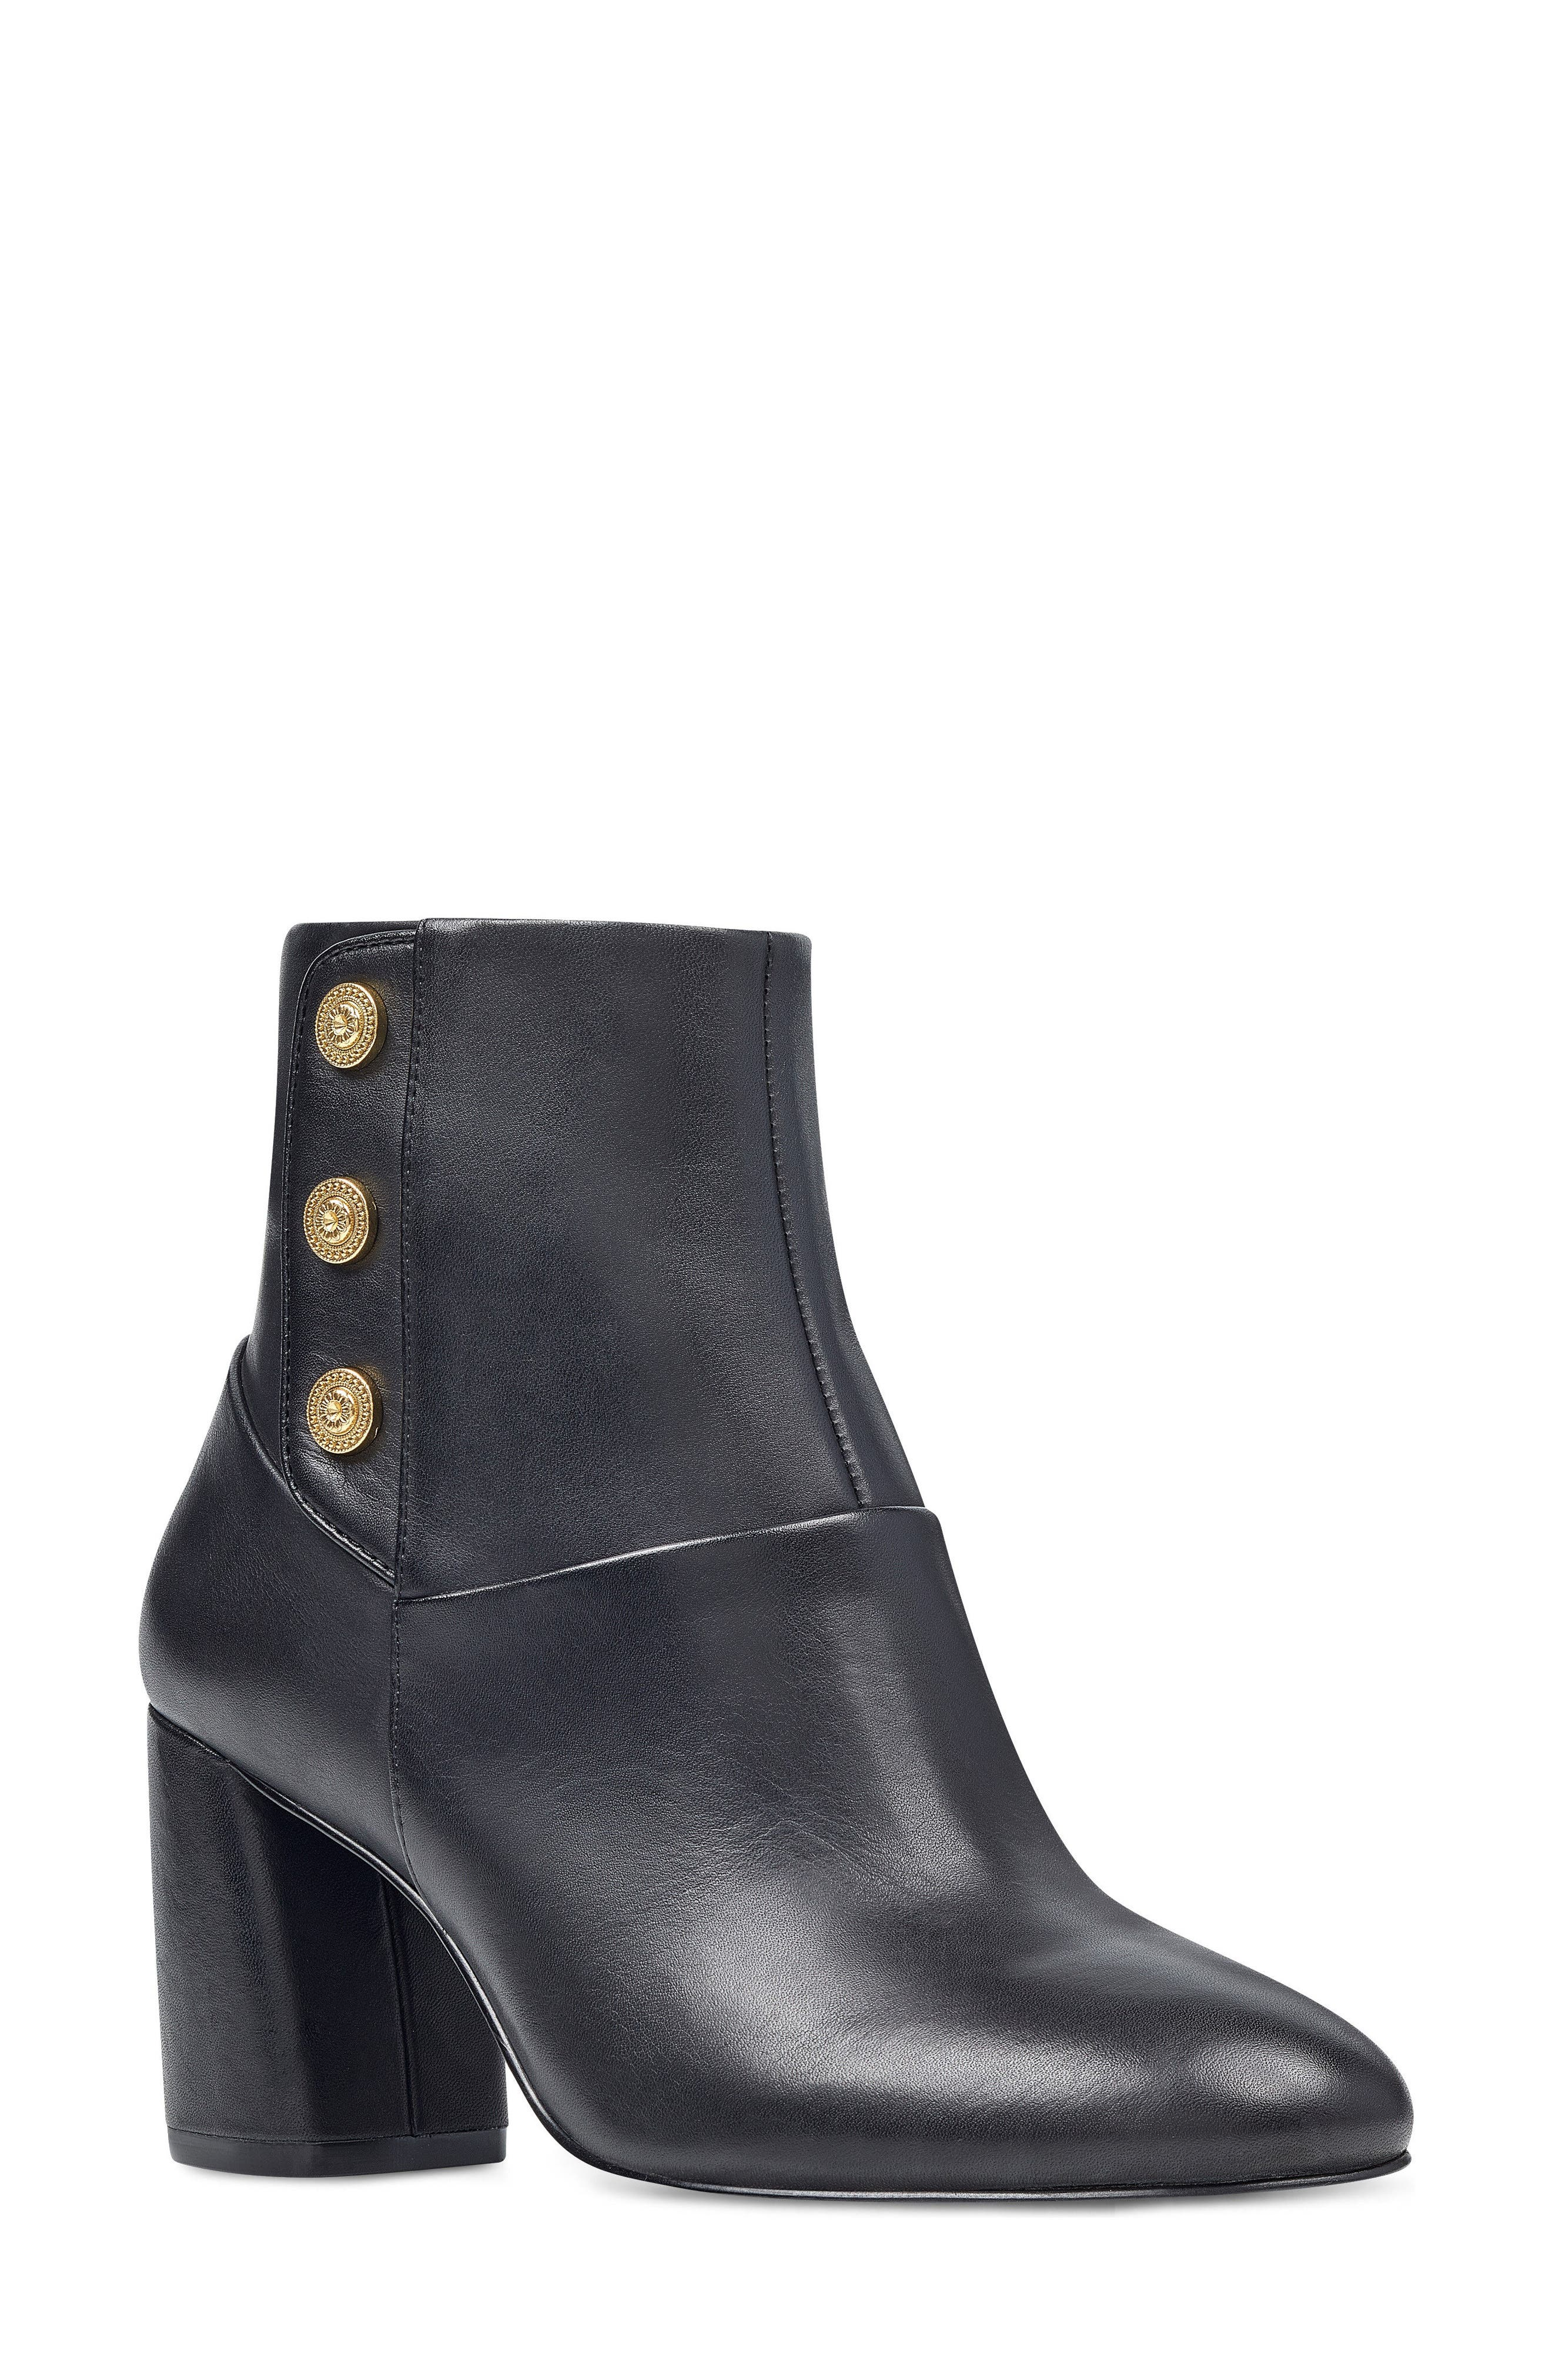 Kirtley Bootie,                             Main thumbnail 1, color,                             Black Leather